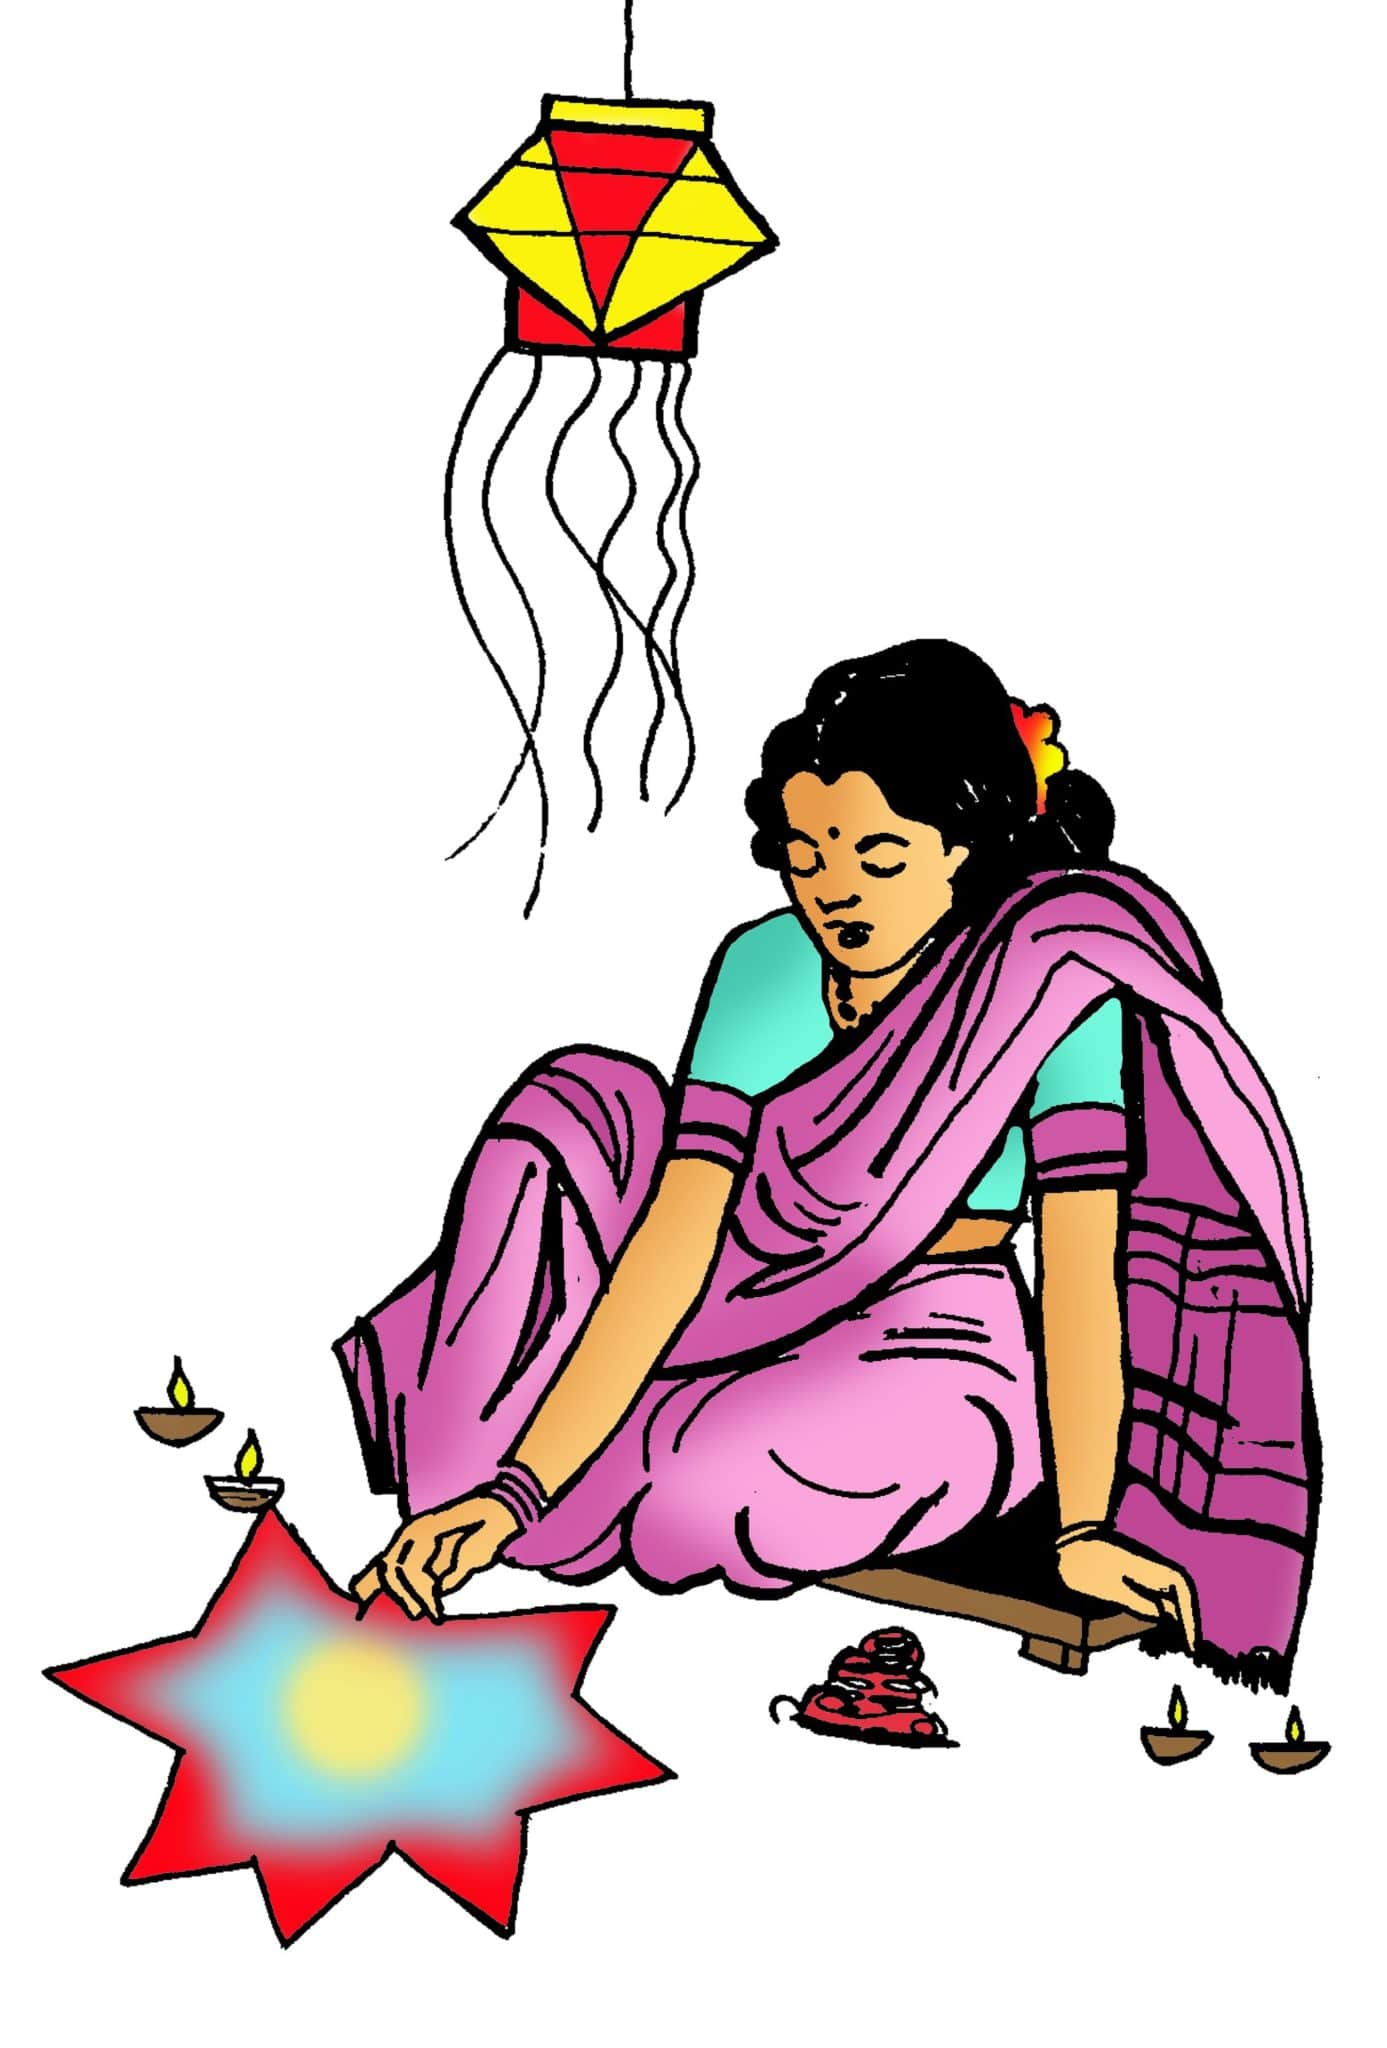 diwali-lakshmi-pooja-festival-meaning-stories-and-traditions  Importance of Dhan Teras, Diwali Lakshmi Pooja Festival Diwali Lakshmi Pooja Festival Meaning Stories and Traditions